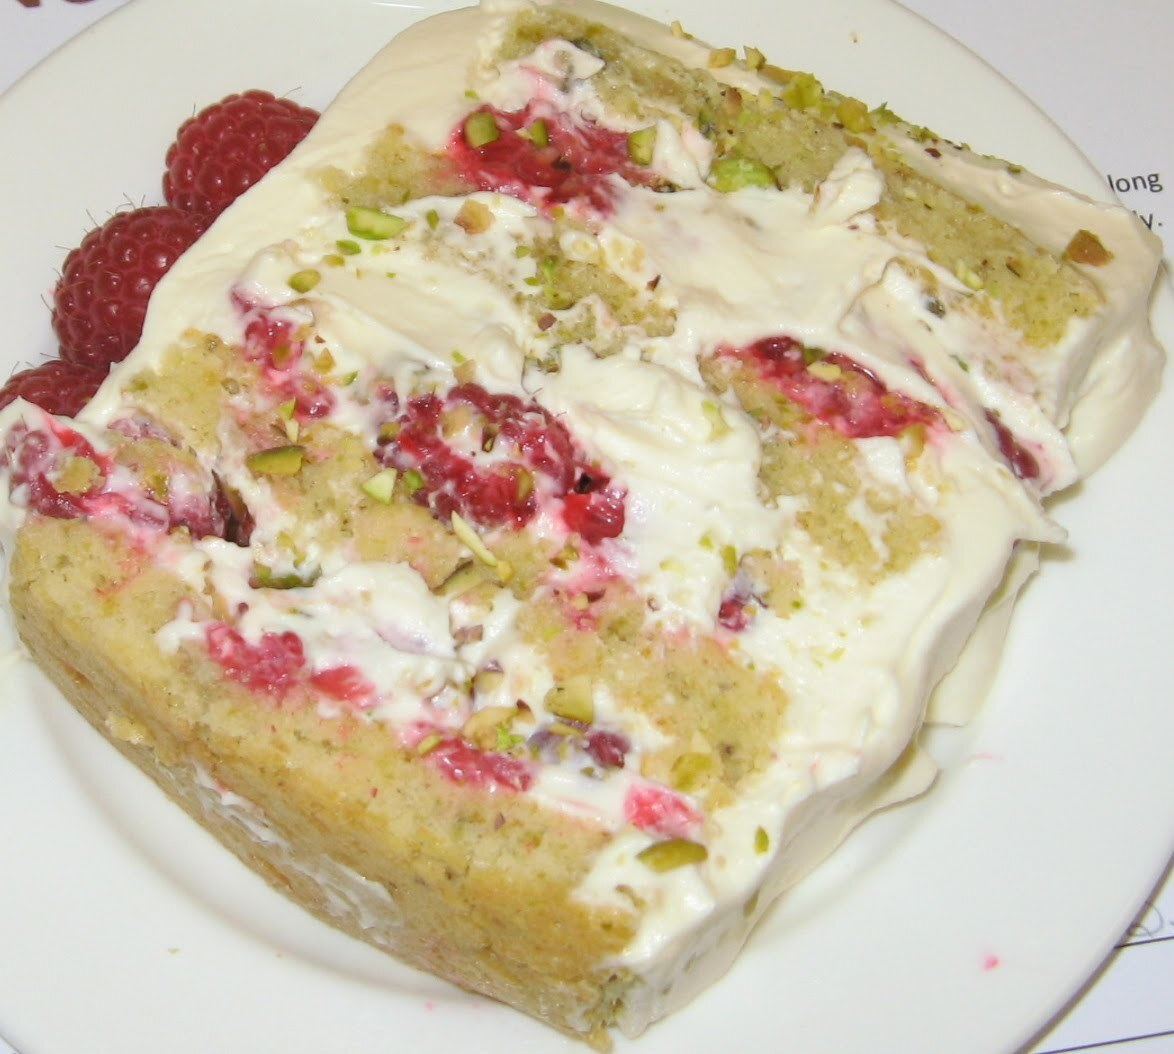 Nom Nom Nom - White Chocolate and Pistachio Cake with Raspberry Mascarpone Cream